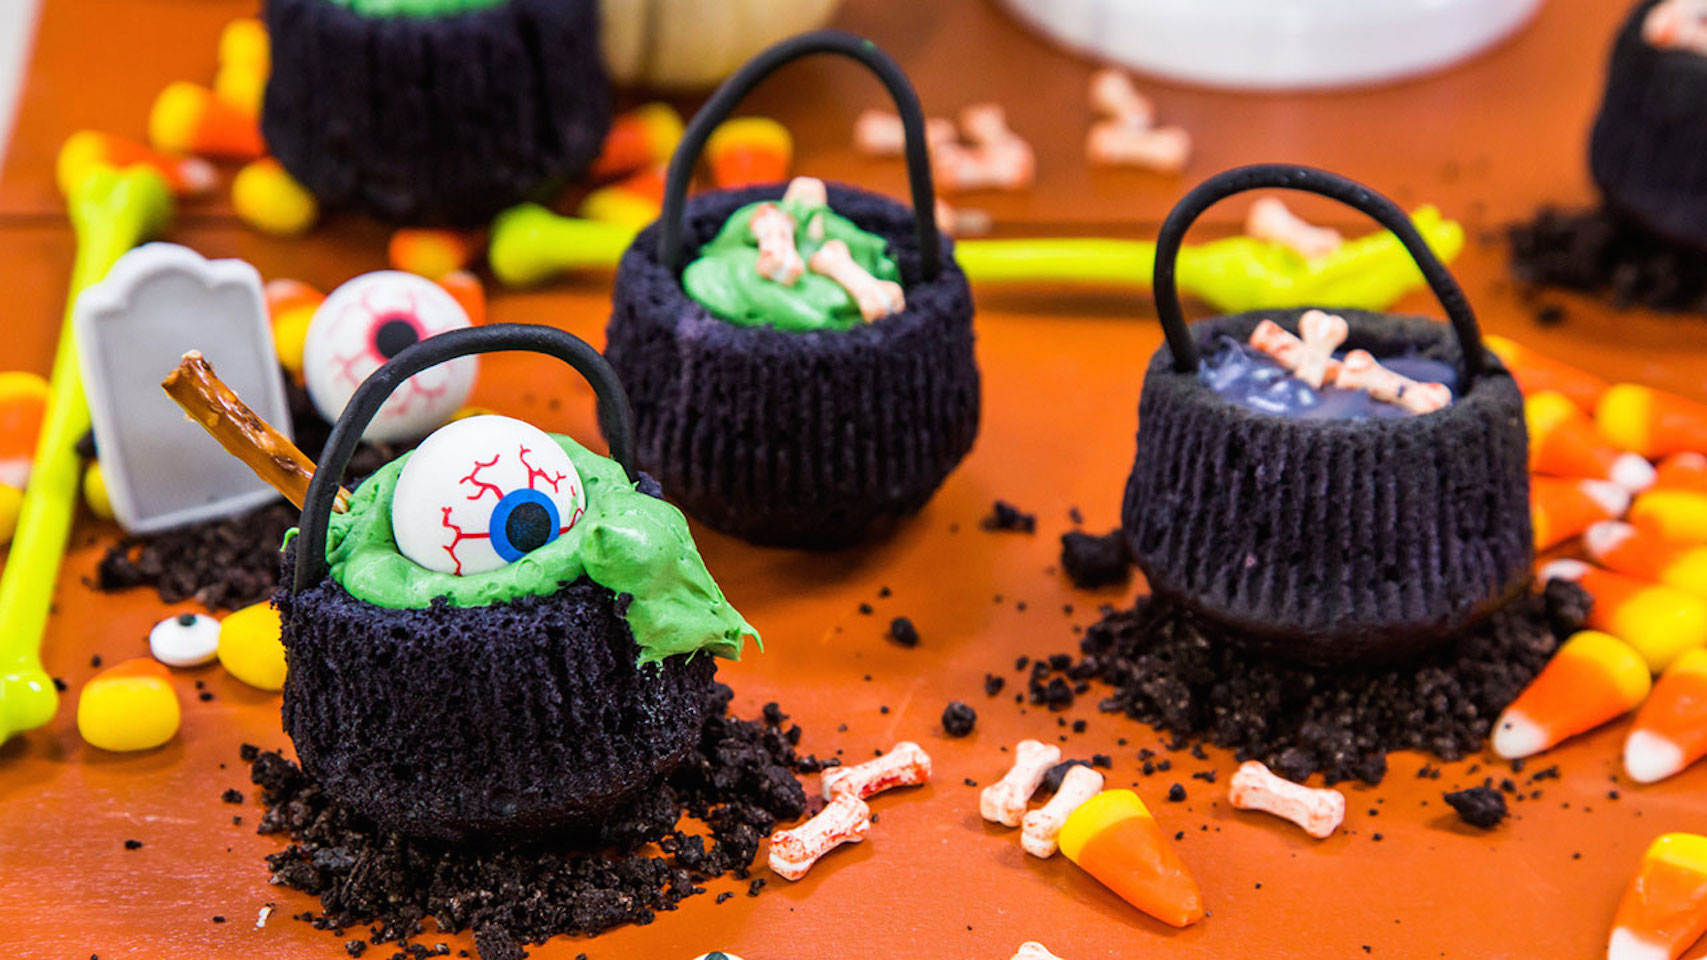 How to Make Cauldron Cupcakes